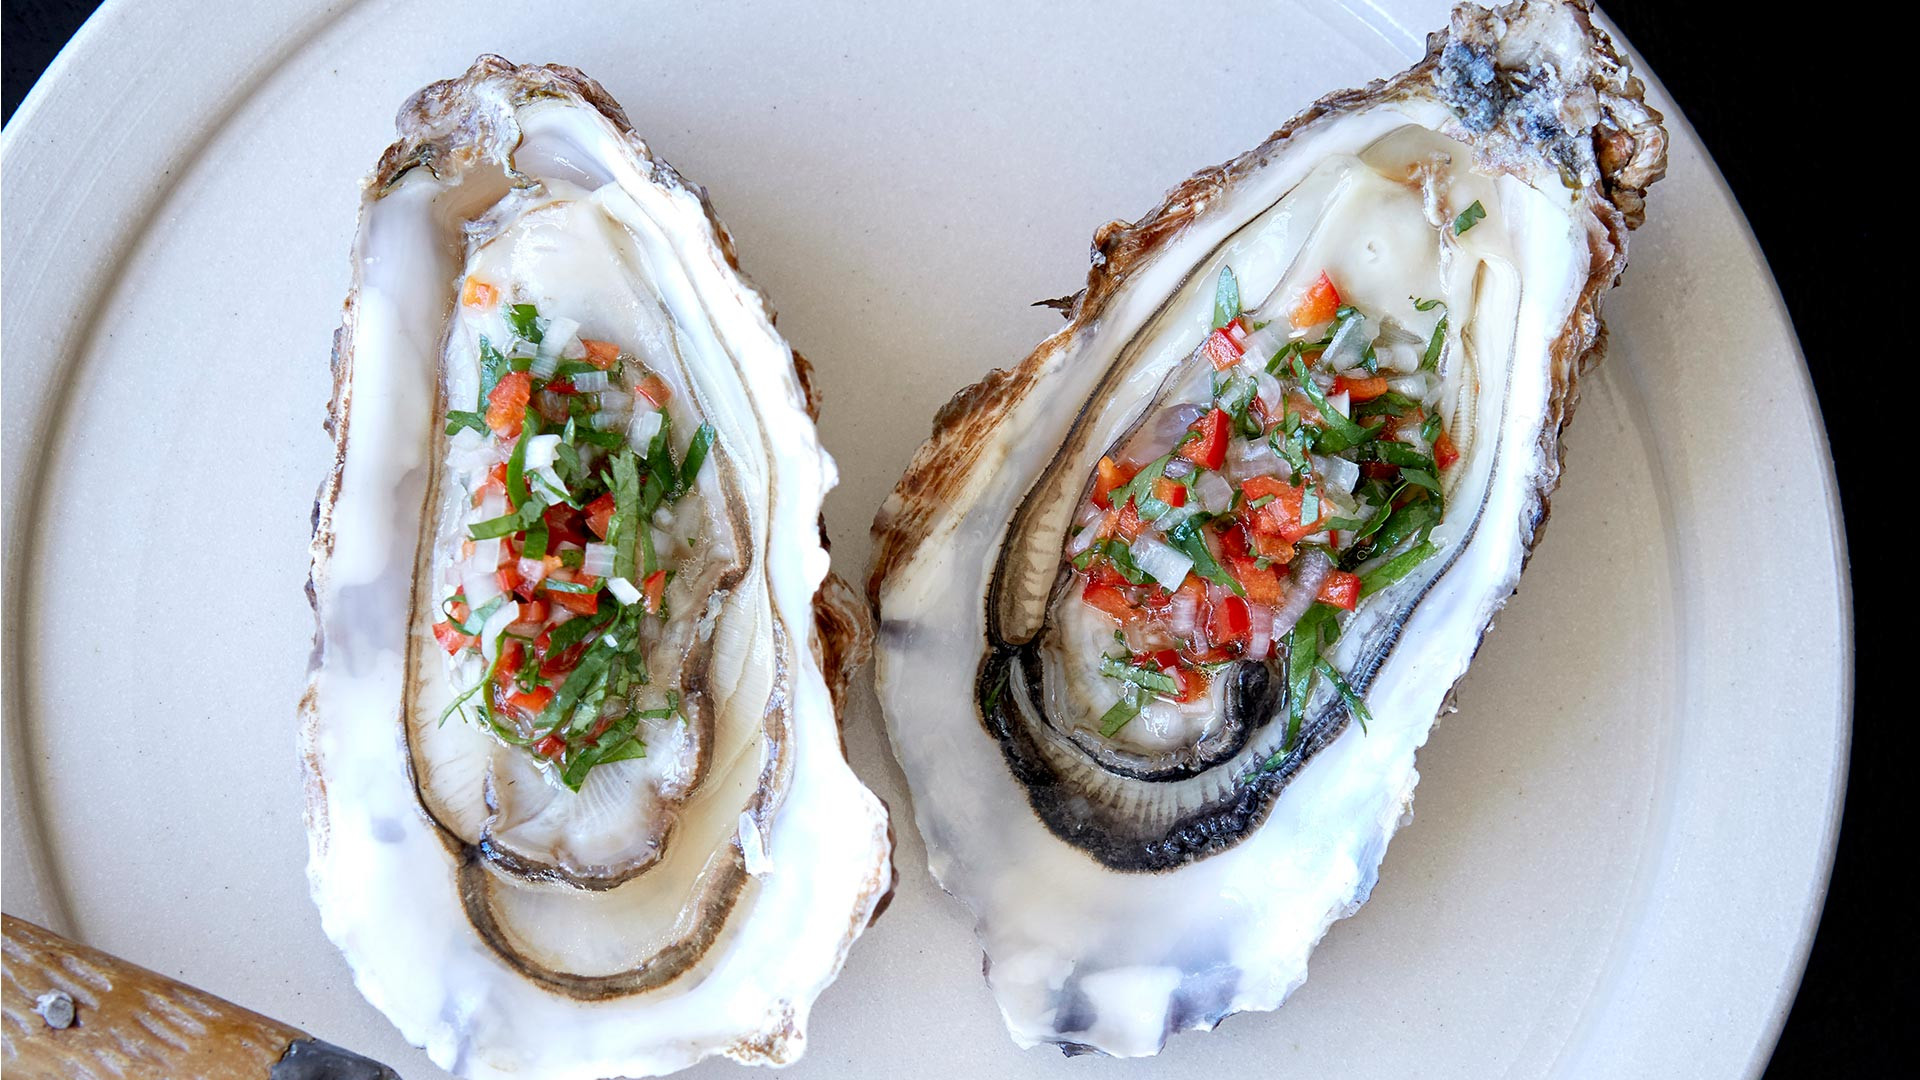 Morecambe Bay oysters with chilli vinegar at Westerns Laundry